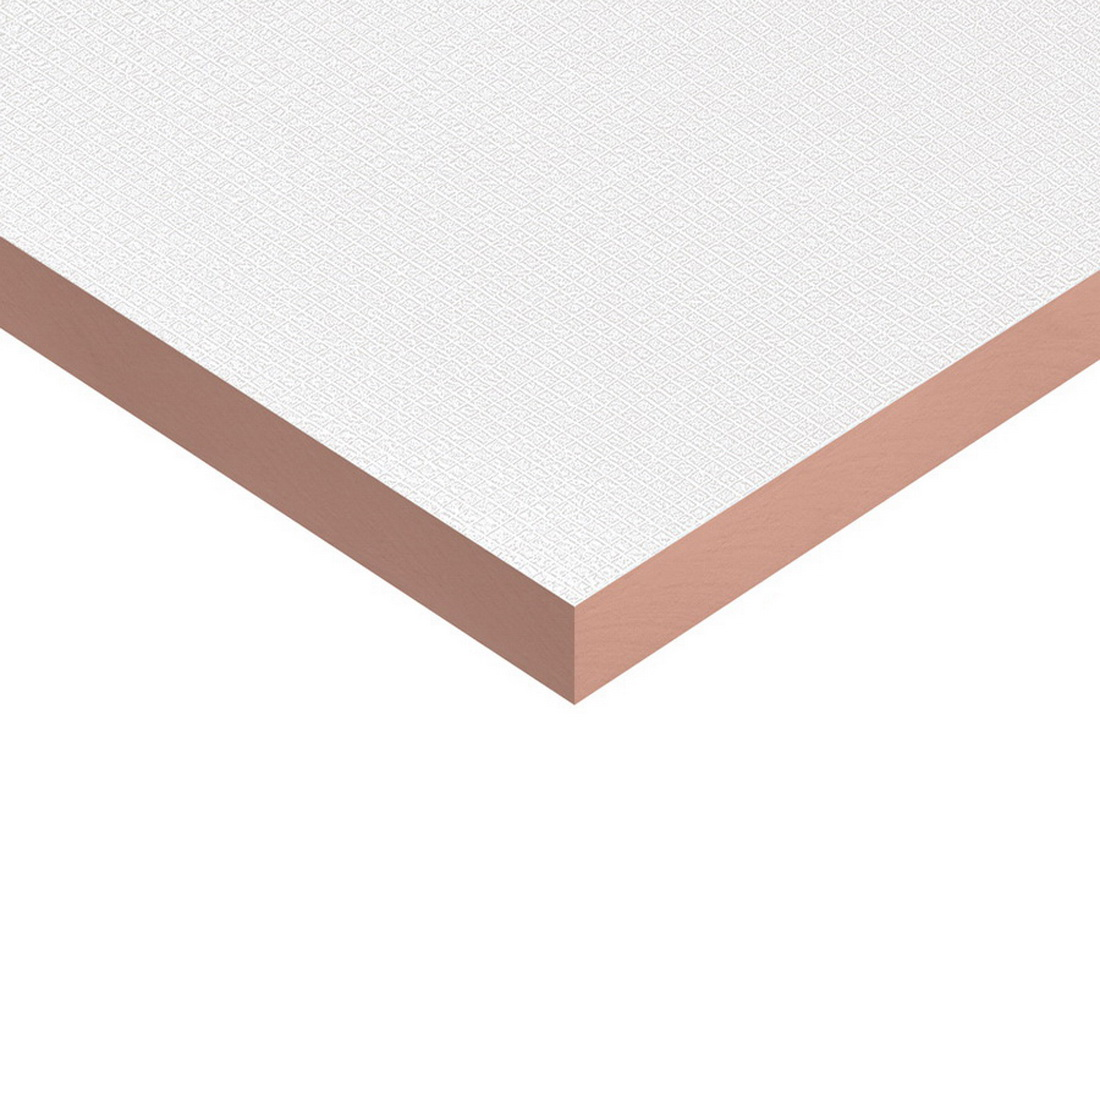 Kooltherm K10 White Soffit Board R1.9 2270 x 1200 x 40mm 3400361